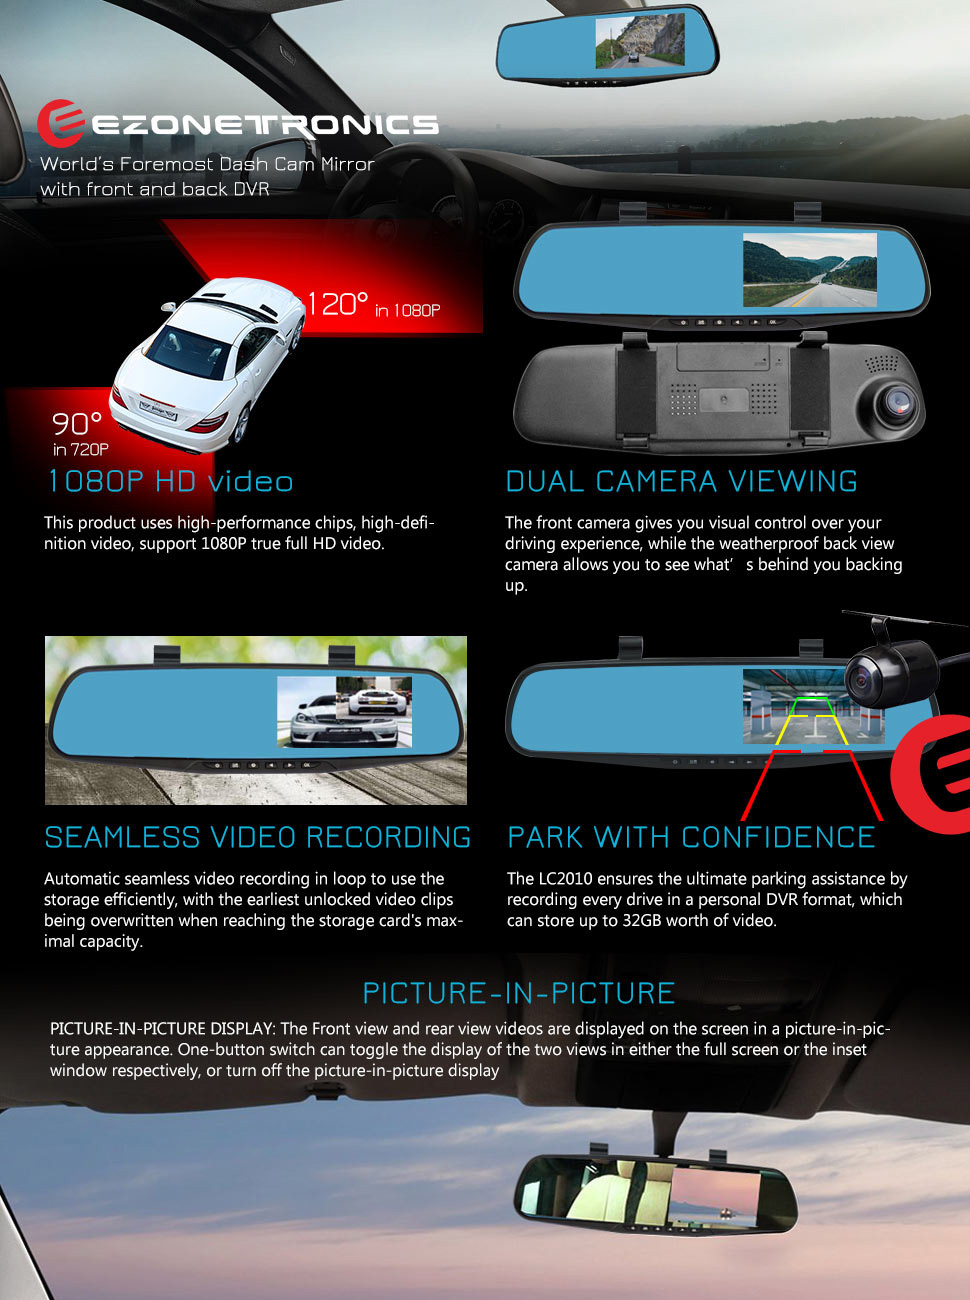 Ezonetronics Car Camera Car Video Recorder Full Hd 1080p Car Video Camera 4 3 Inch Lcd With Dual Lens For Vehicles Front Rearview Mirror Dvr